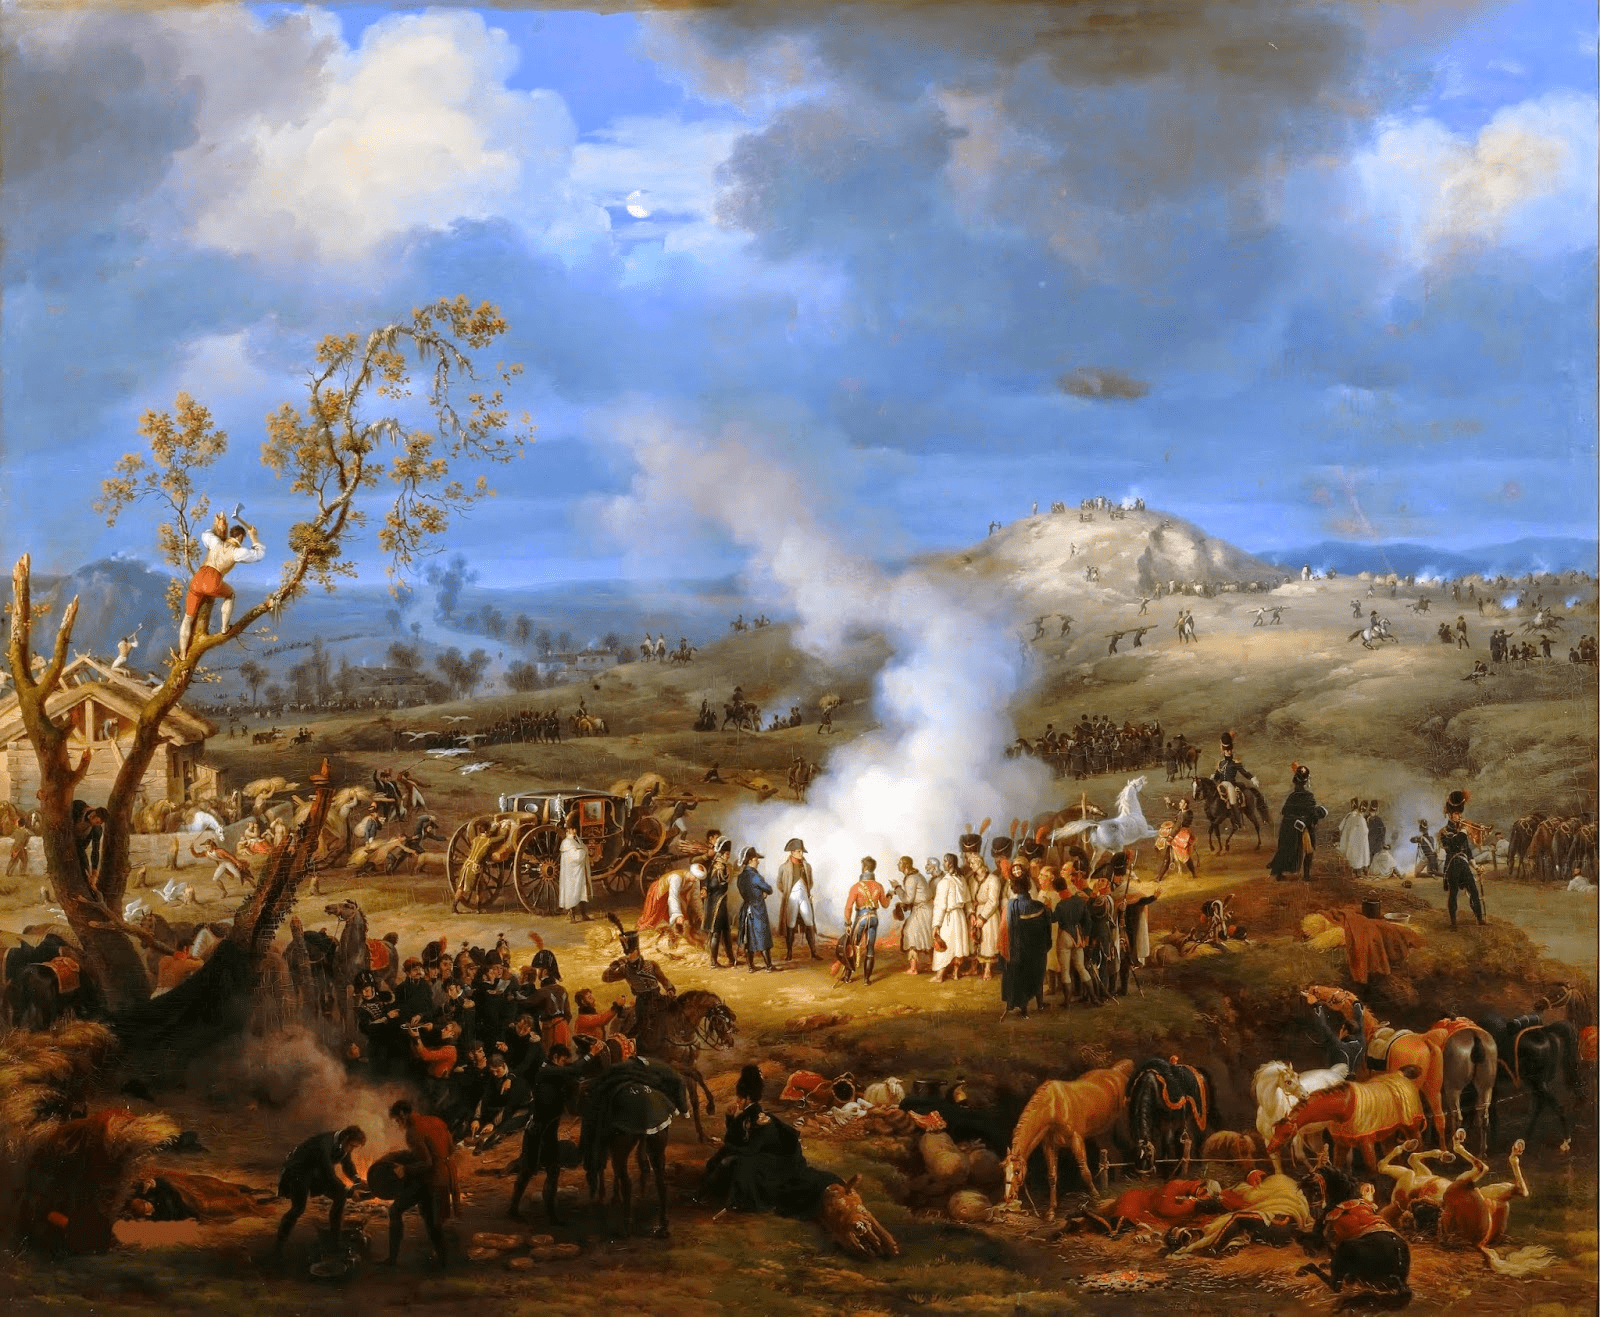 File:Bivouac on the Eve of the Battle of Austerlitz, 1st December 1805.PNG